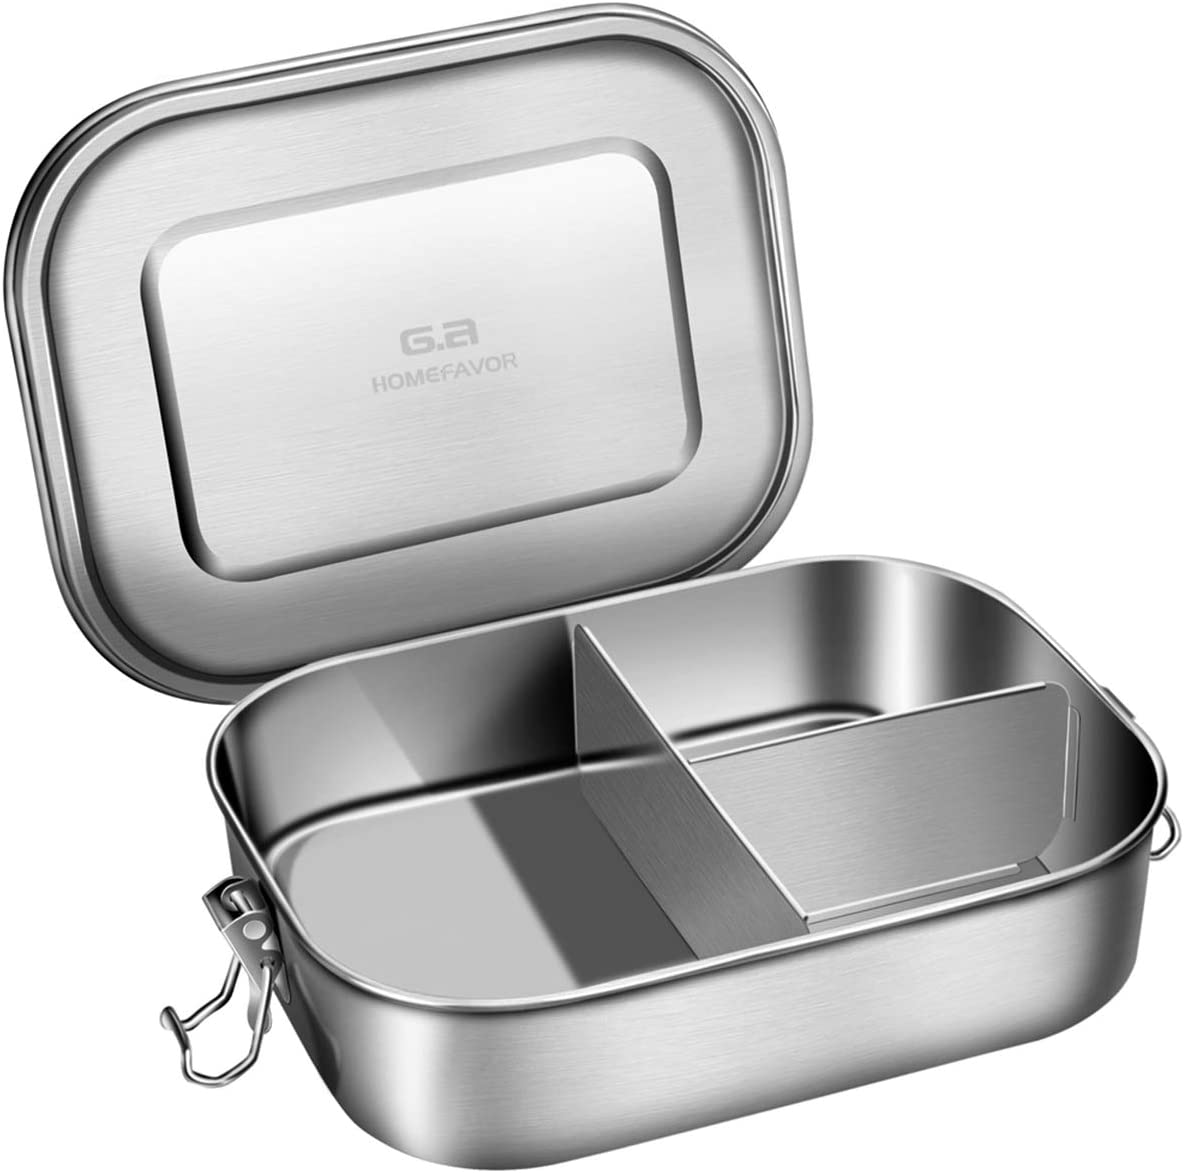 Leak Proof Stainless Steel Food Container, G.a HOMEFAVOR Bento Lunch Box with 3-Compartment,1400ML,BPA free for Work or Healthy School Lunch Box, Dishwasher Safe